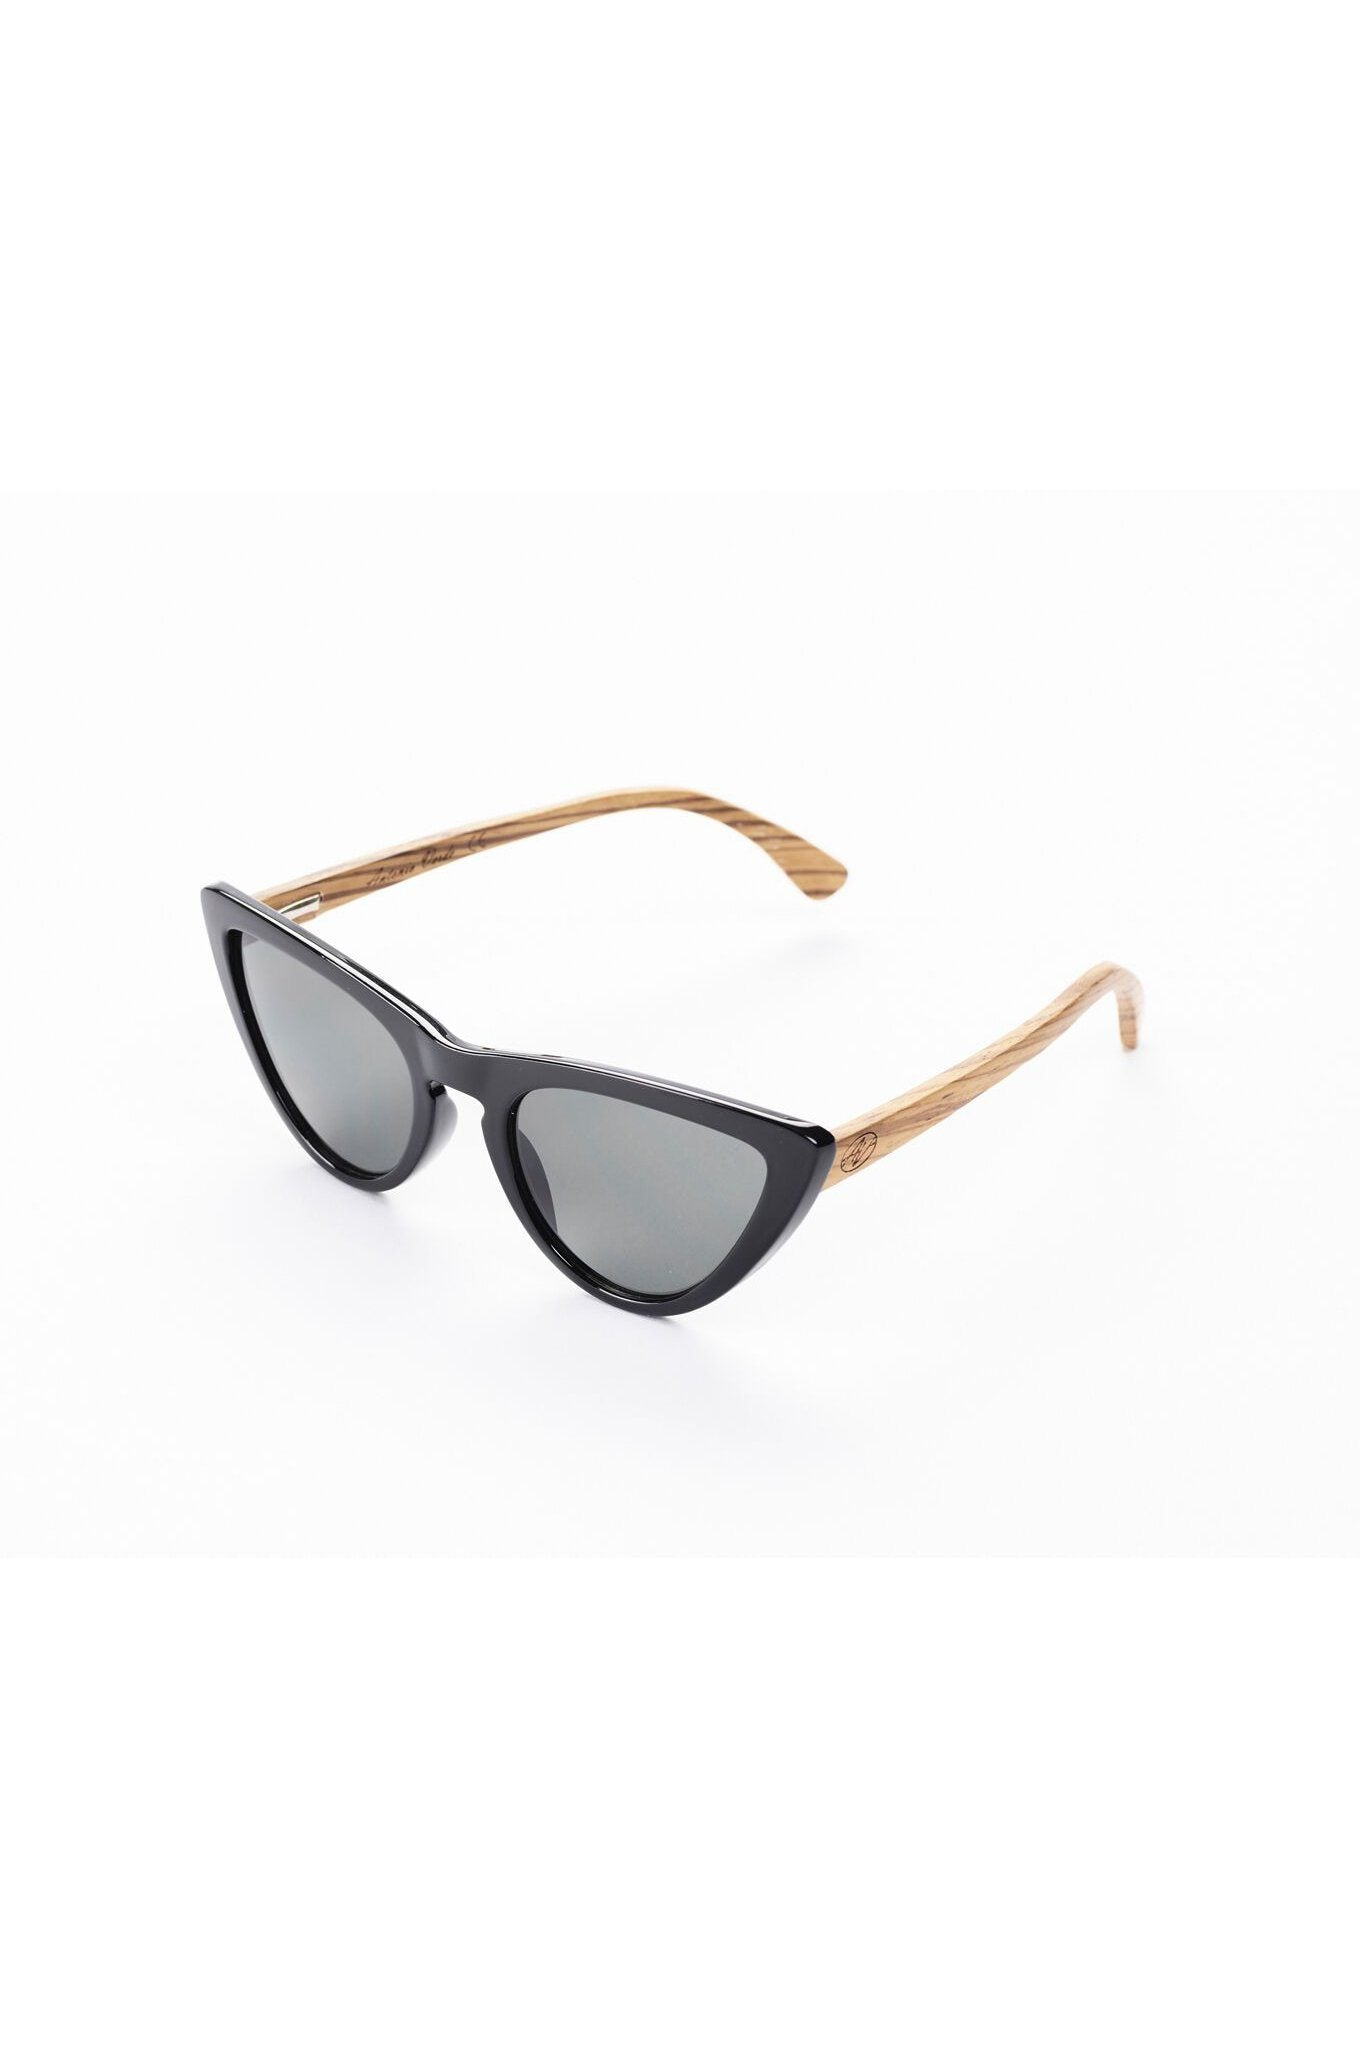 Black Cat Sunglasses - Komodo Fashion